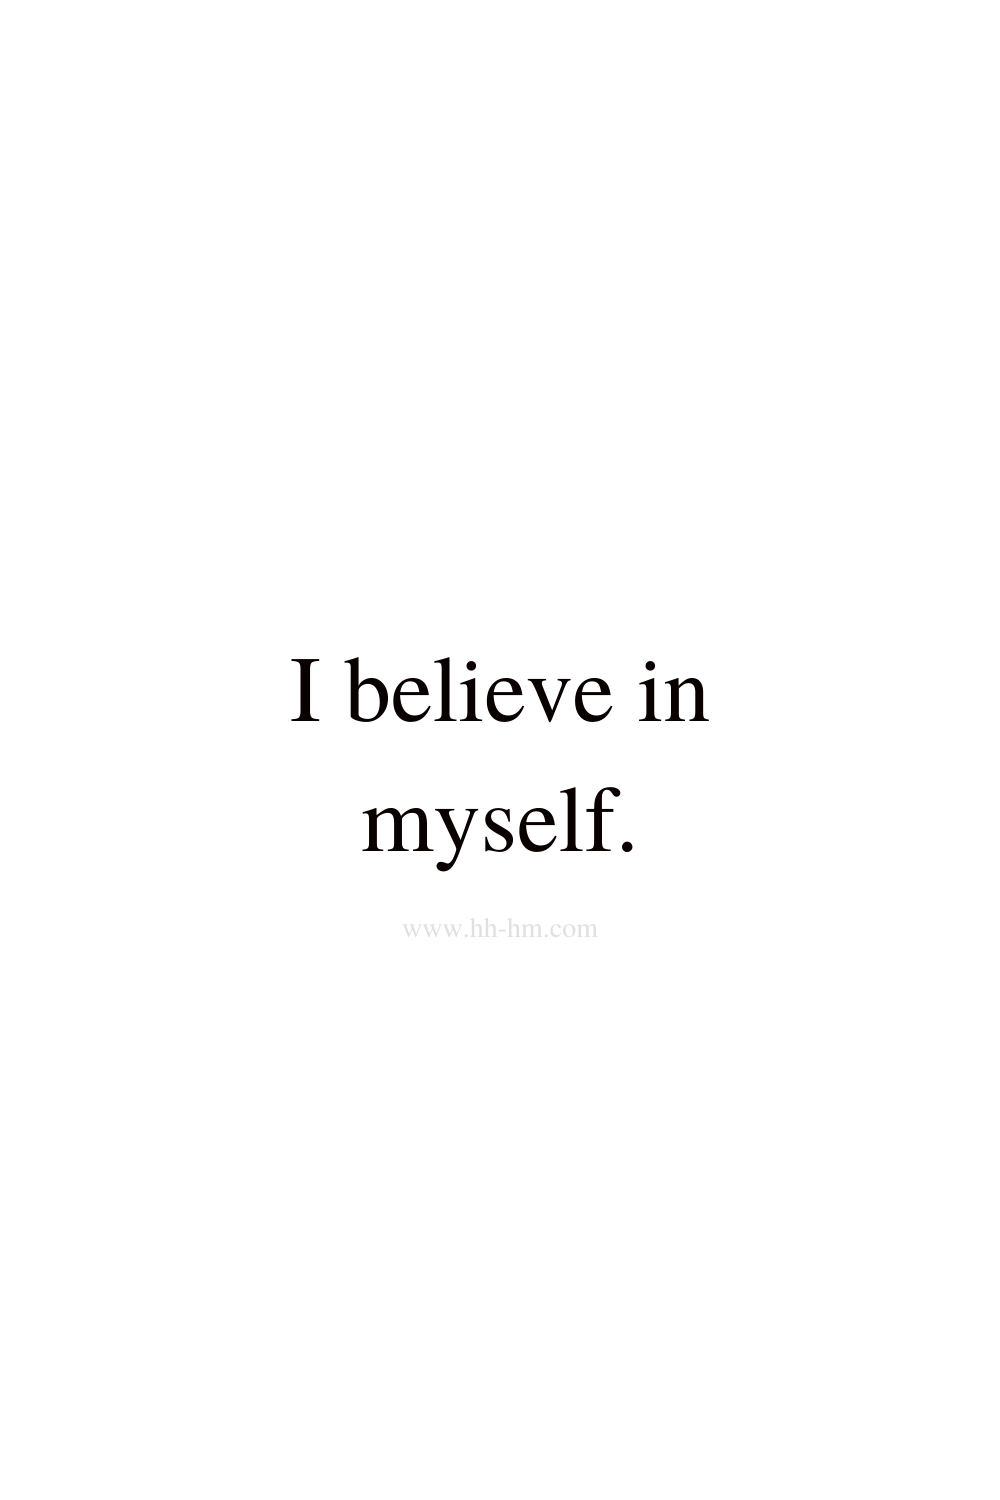 I believe in myself - self love and self confidence morning affirmations